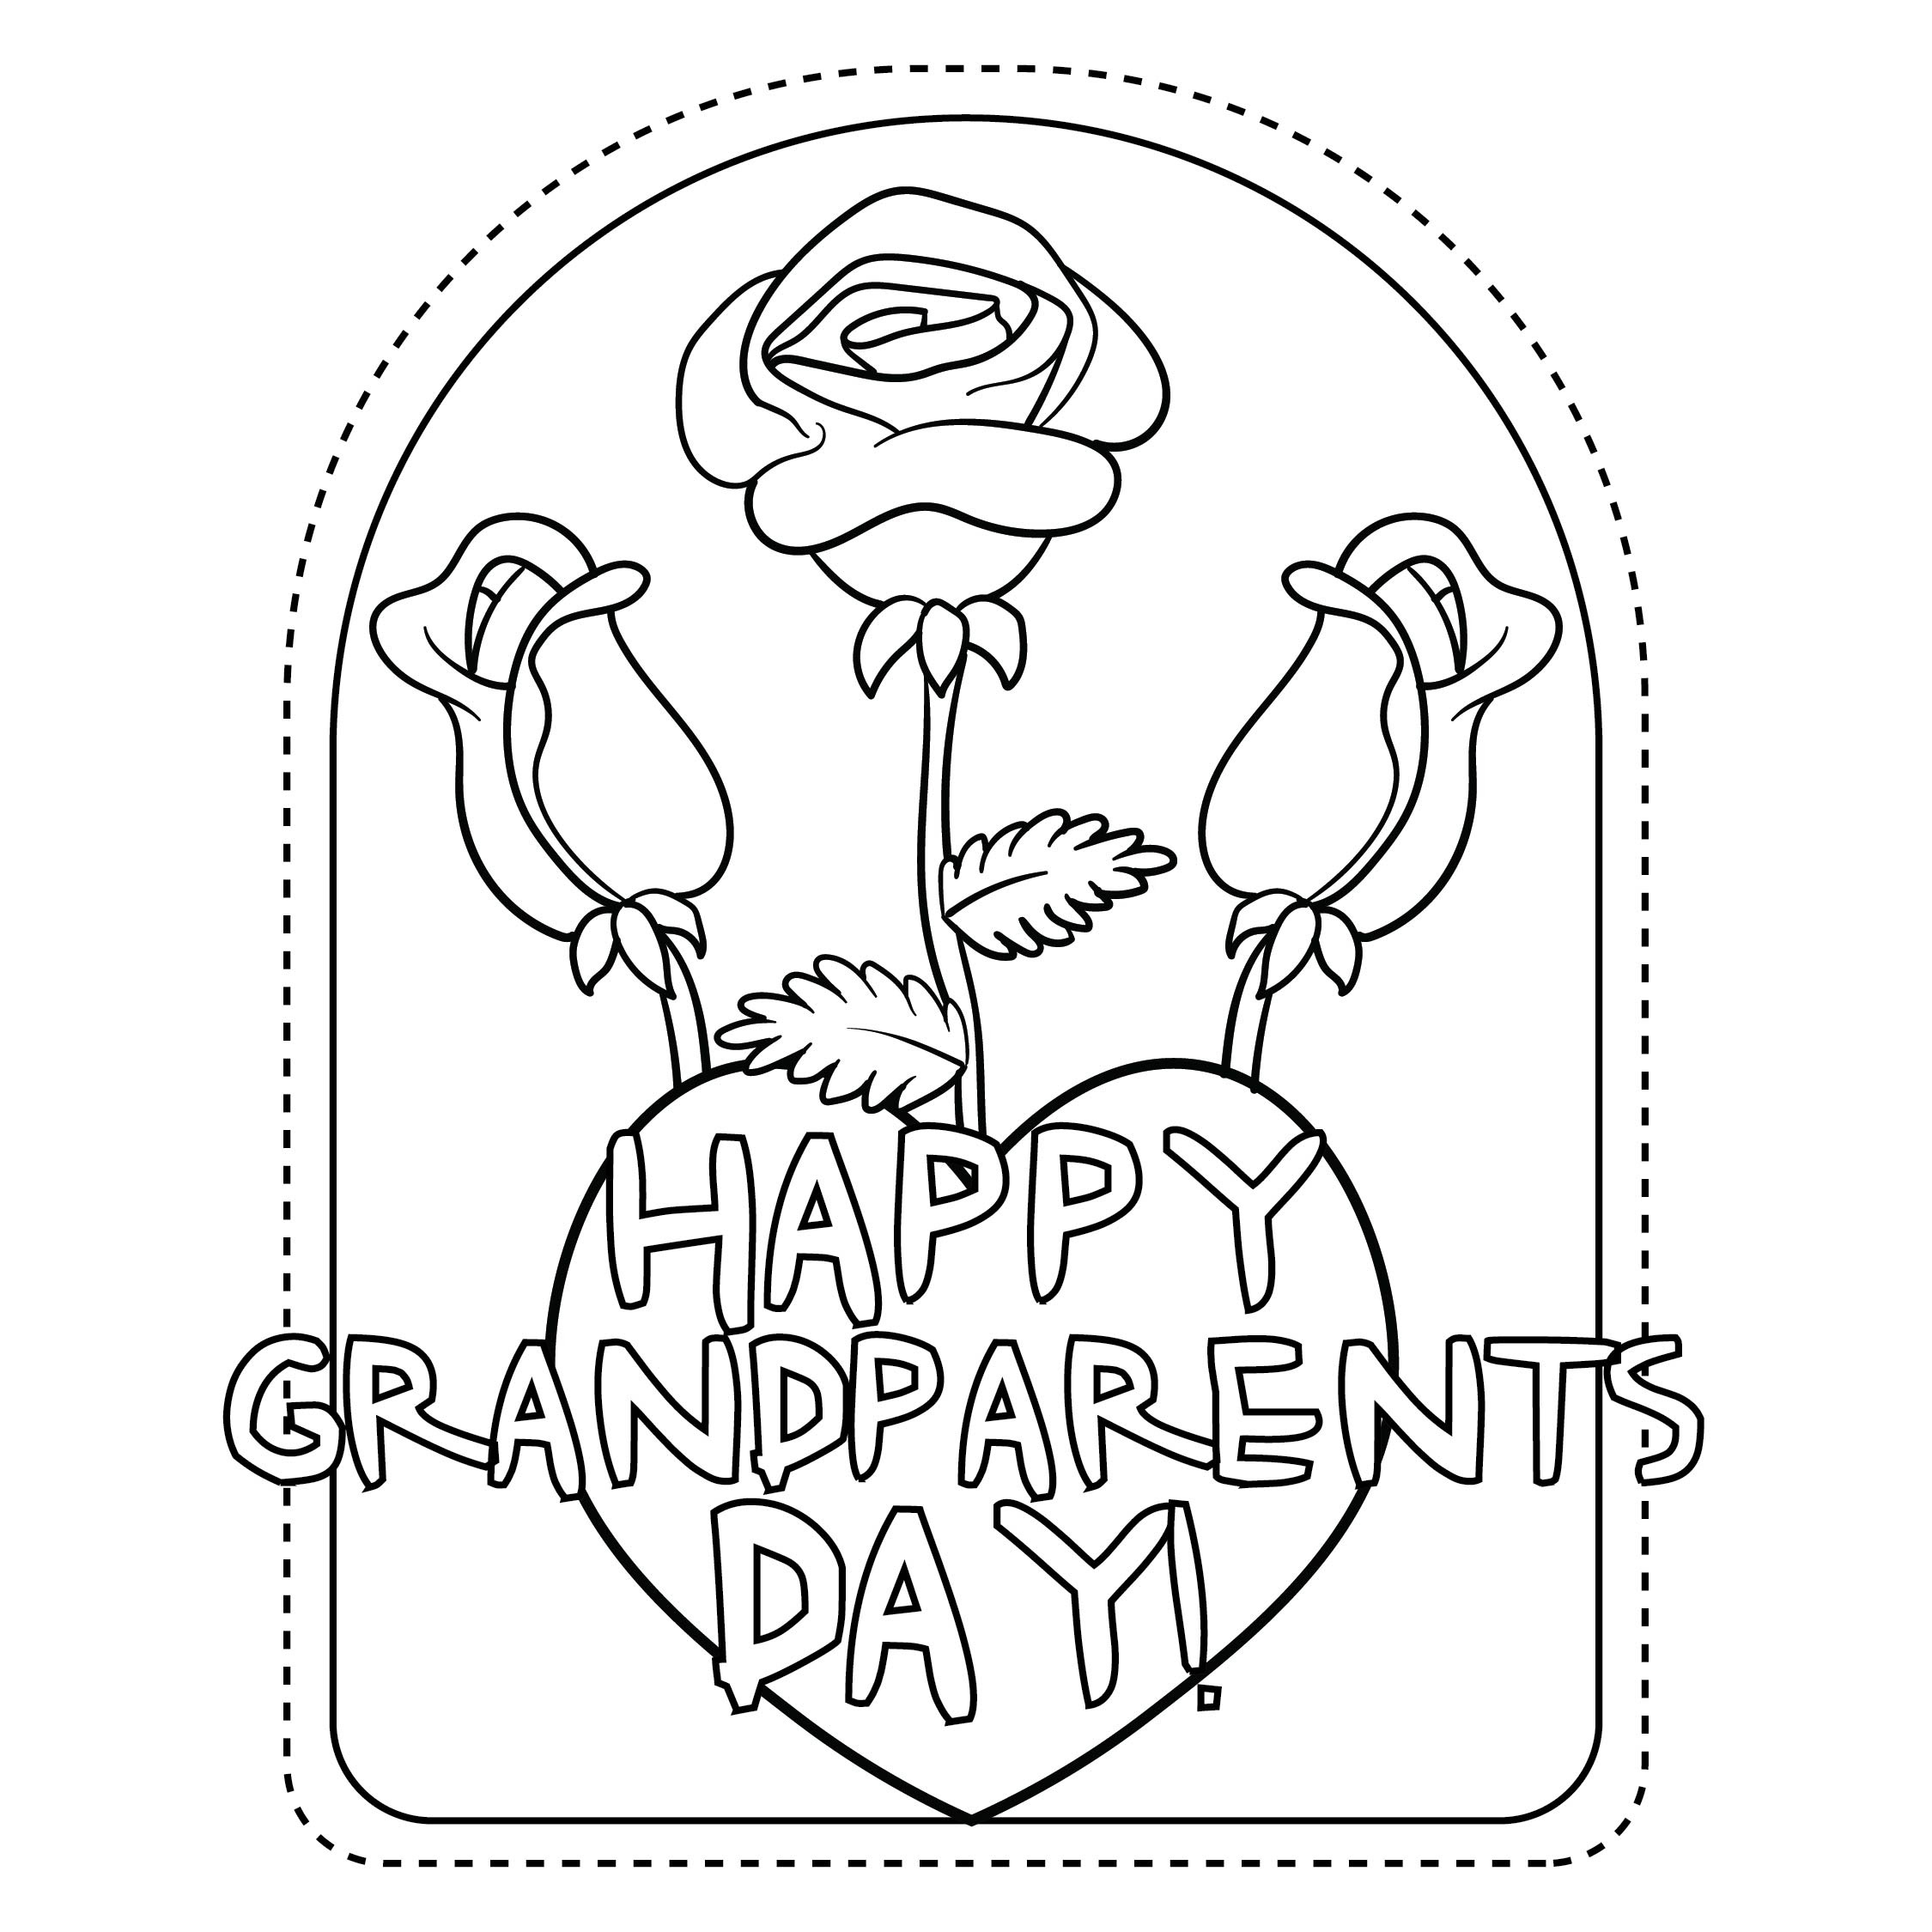 4 Best Images of Grandparents Day Printables ...